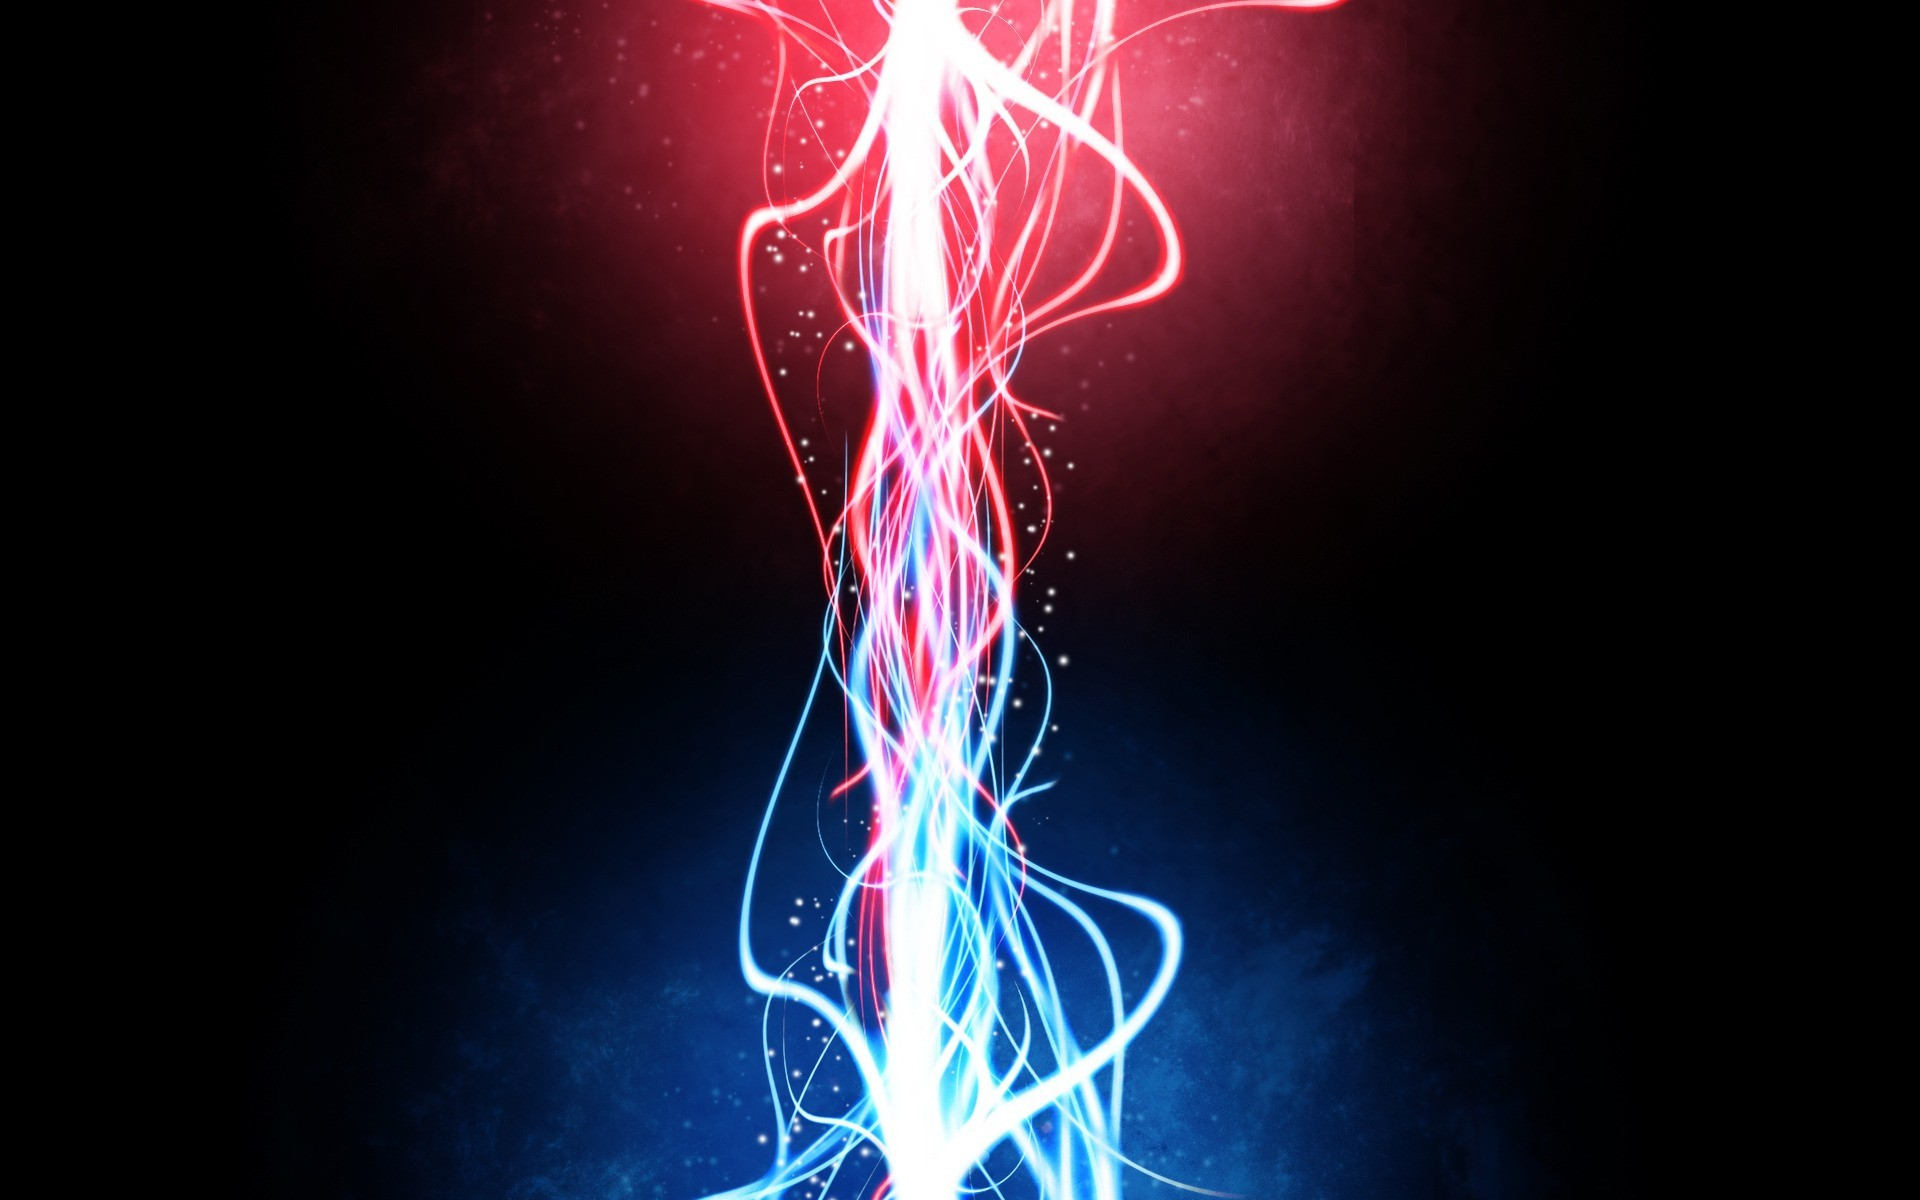 Lights Humor Wallpapers,mobile, Amazing, Samsung,abstract - Neon Lines - HD Wallpaper